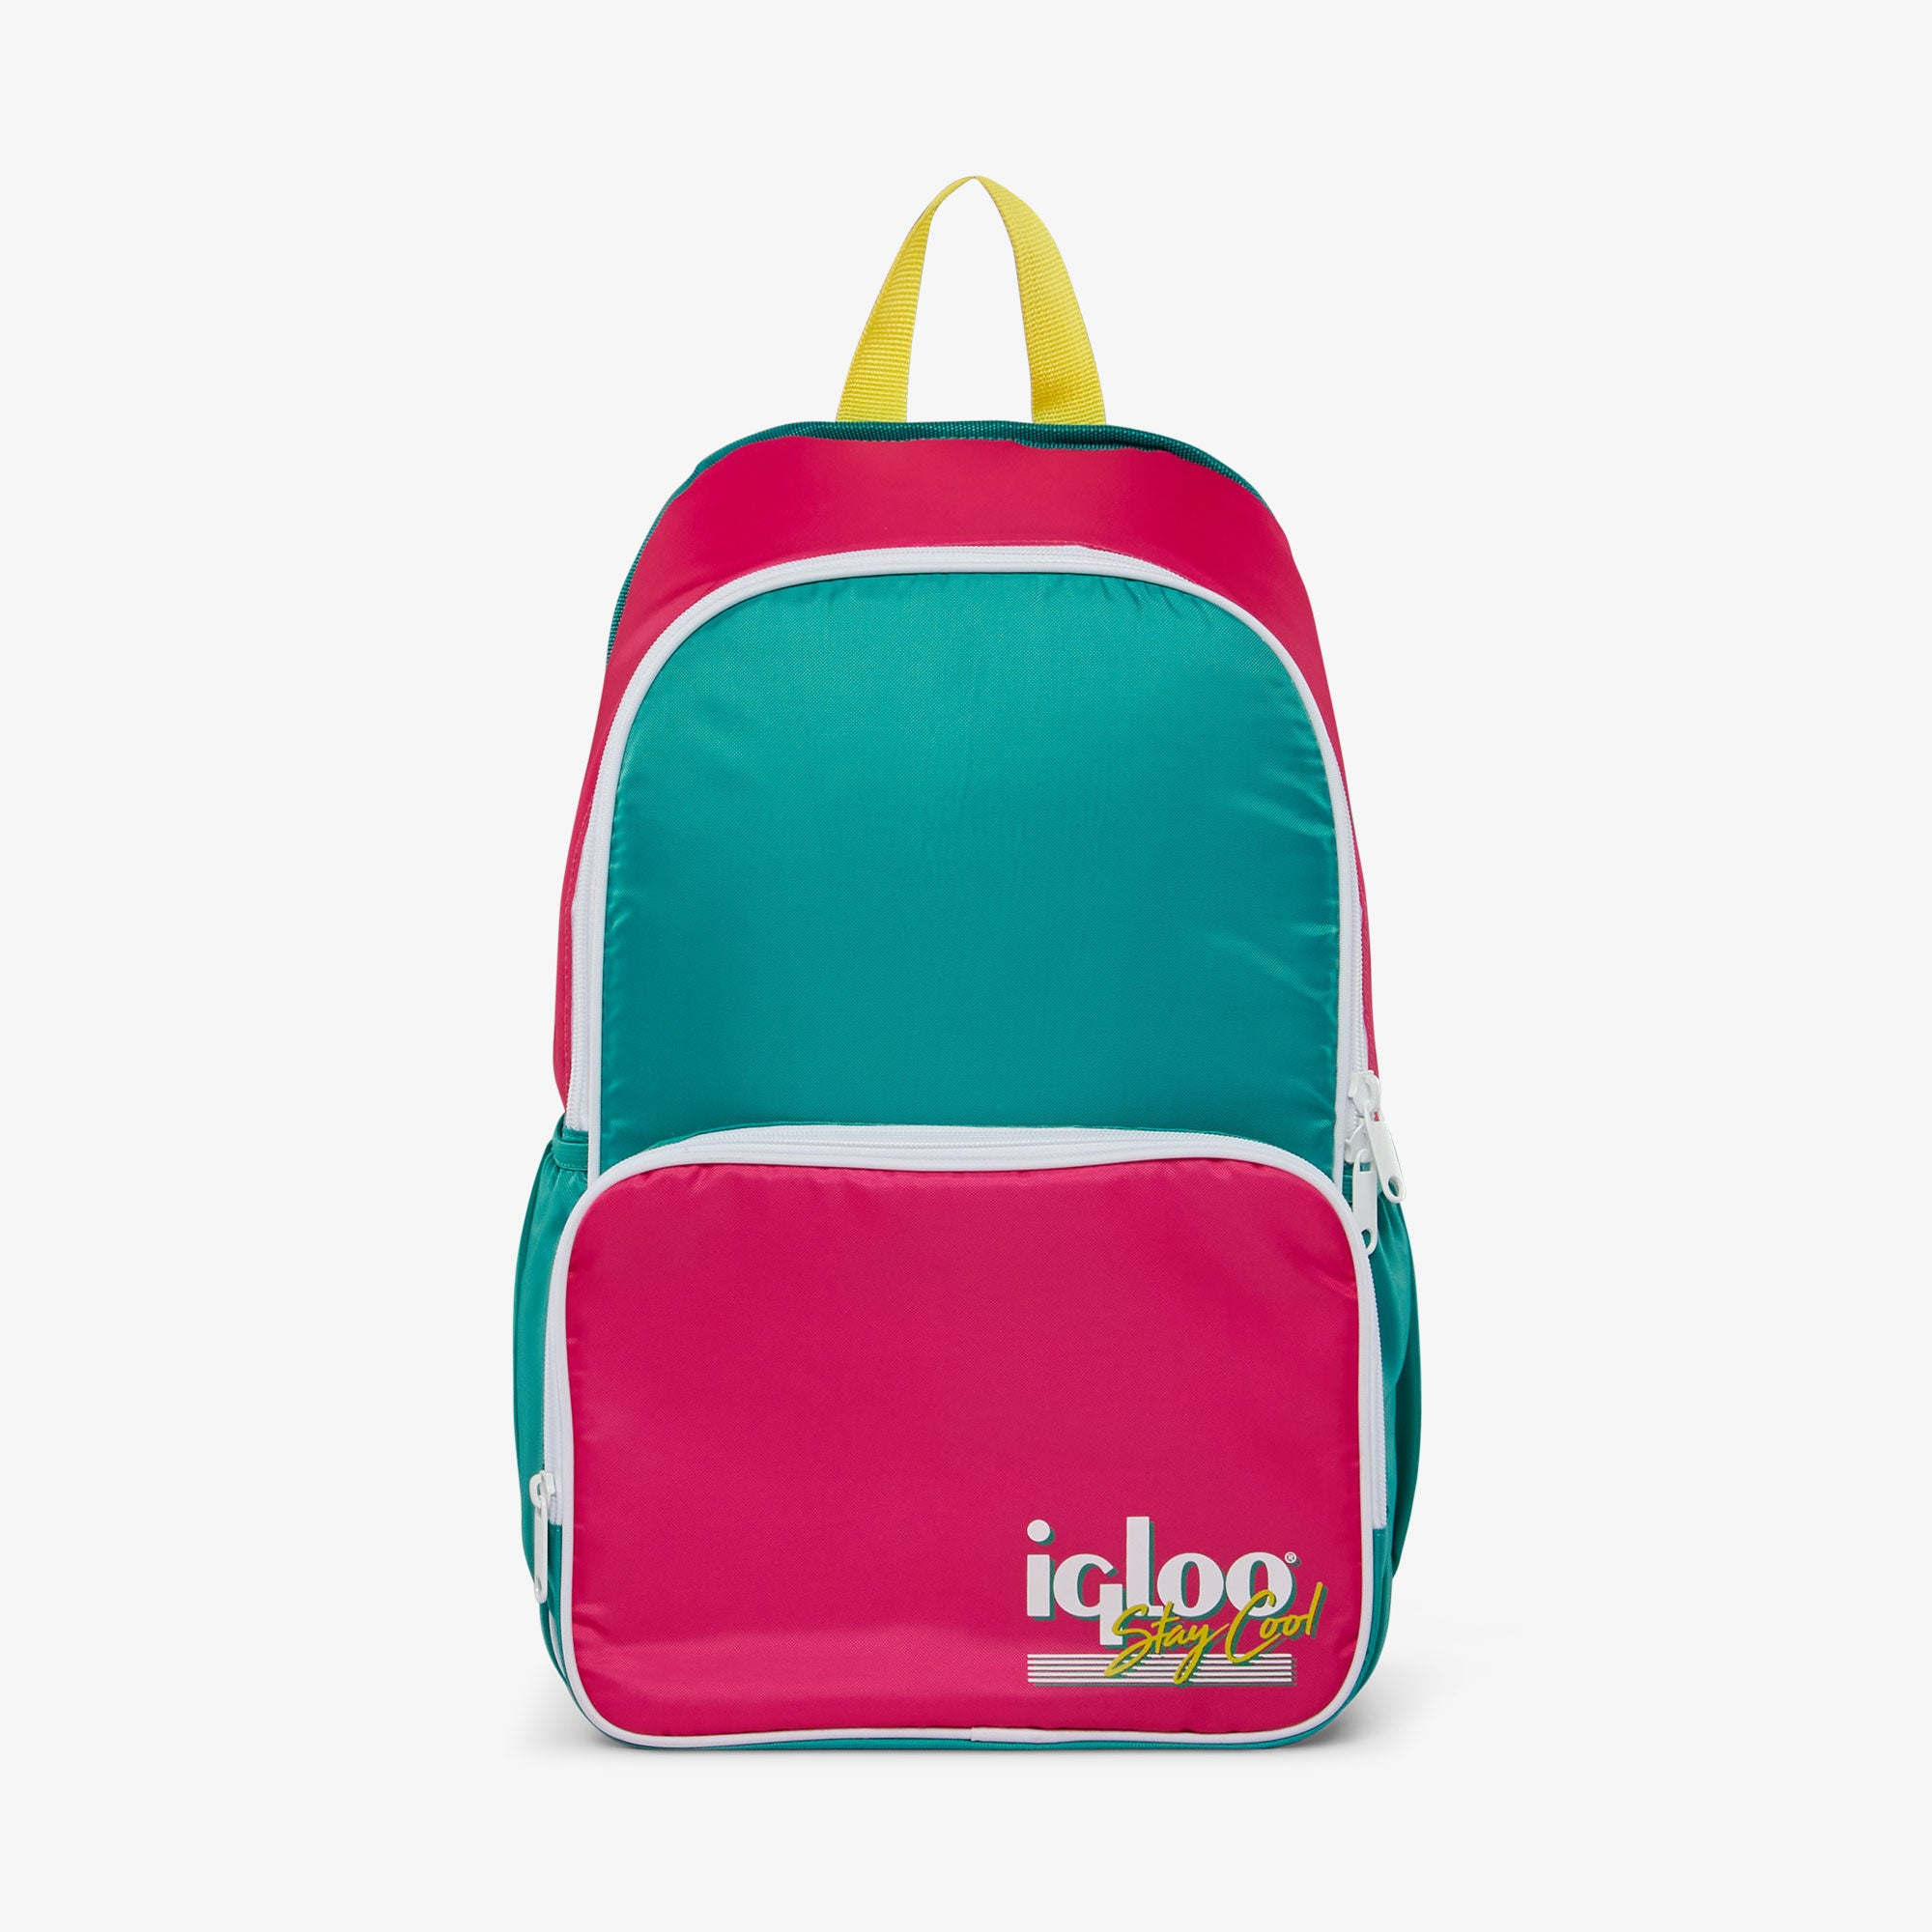 Front View | Retro Backpack Cooler